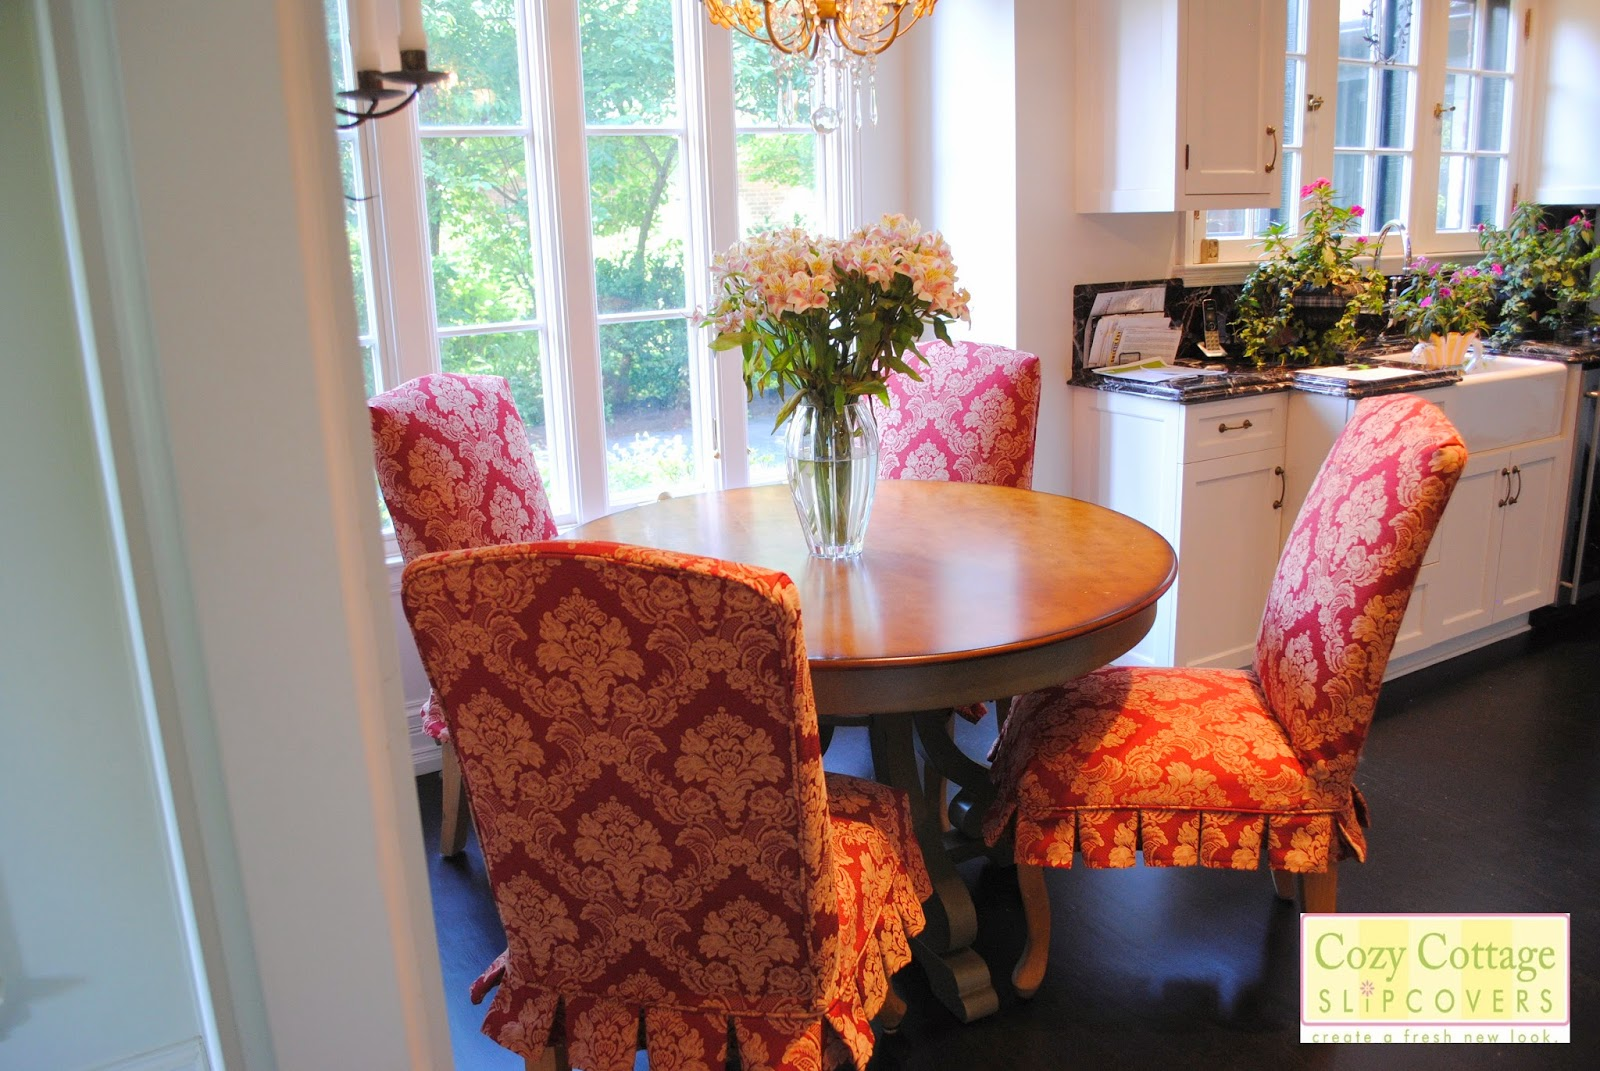 Cozy cottage slipcovers new office chair slipcovers - Here Is A Picture With All The New Slipcovers Around The Table Posted By Cozy Cottage